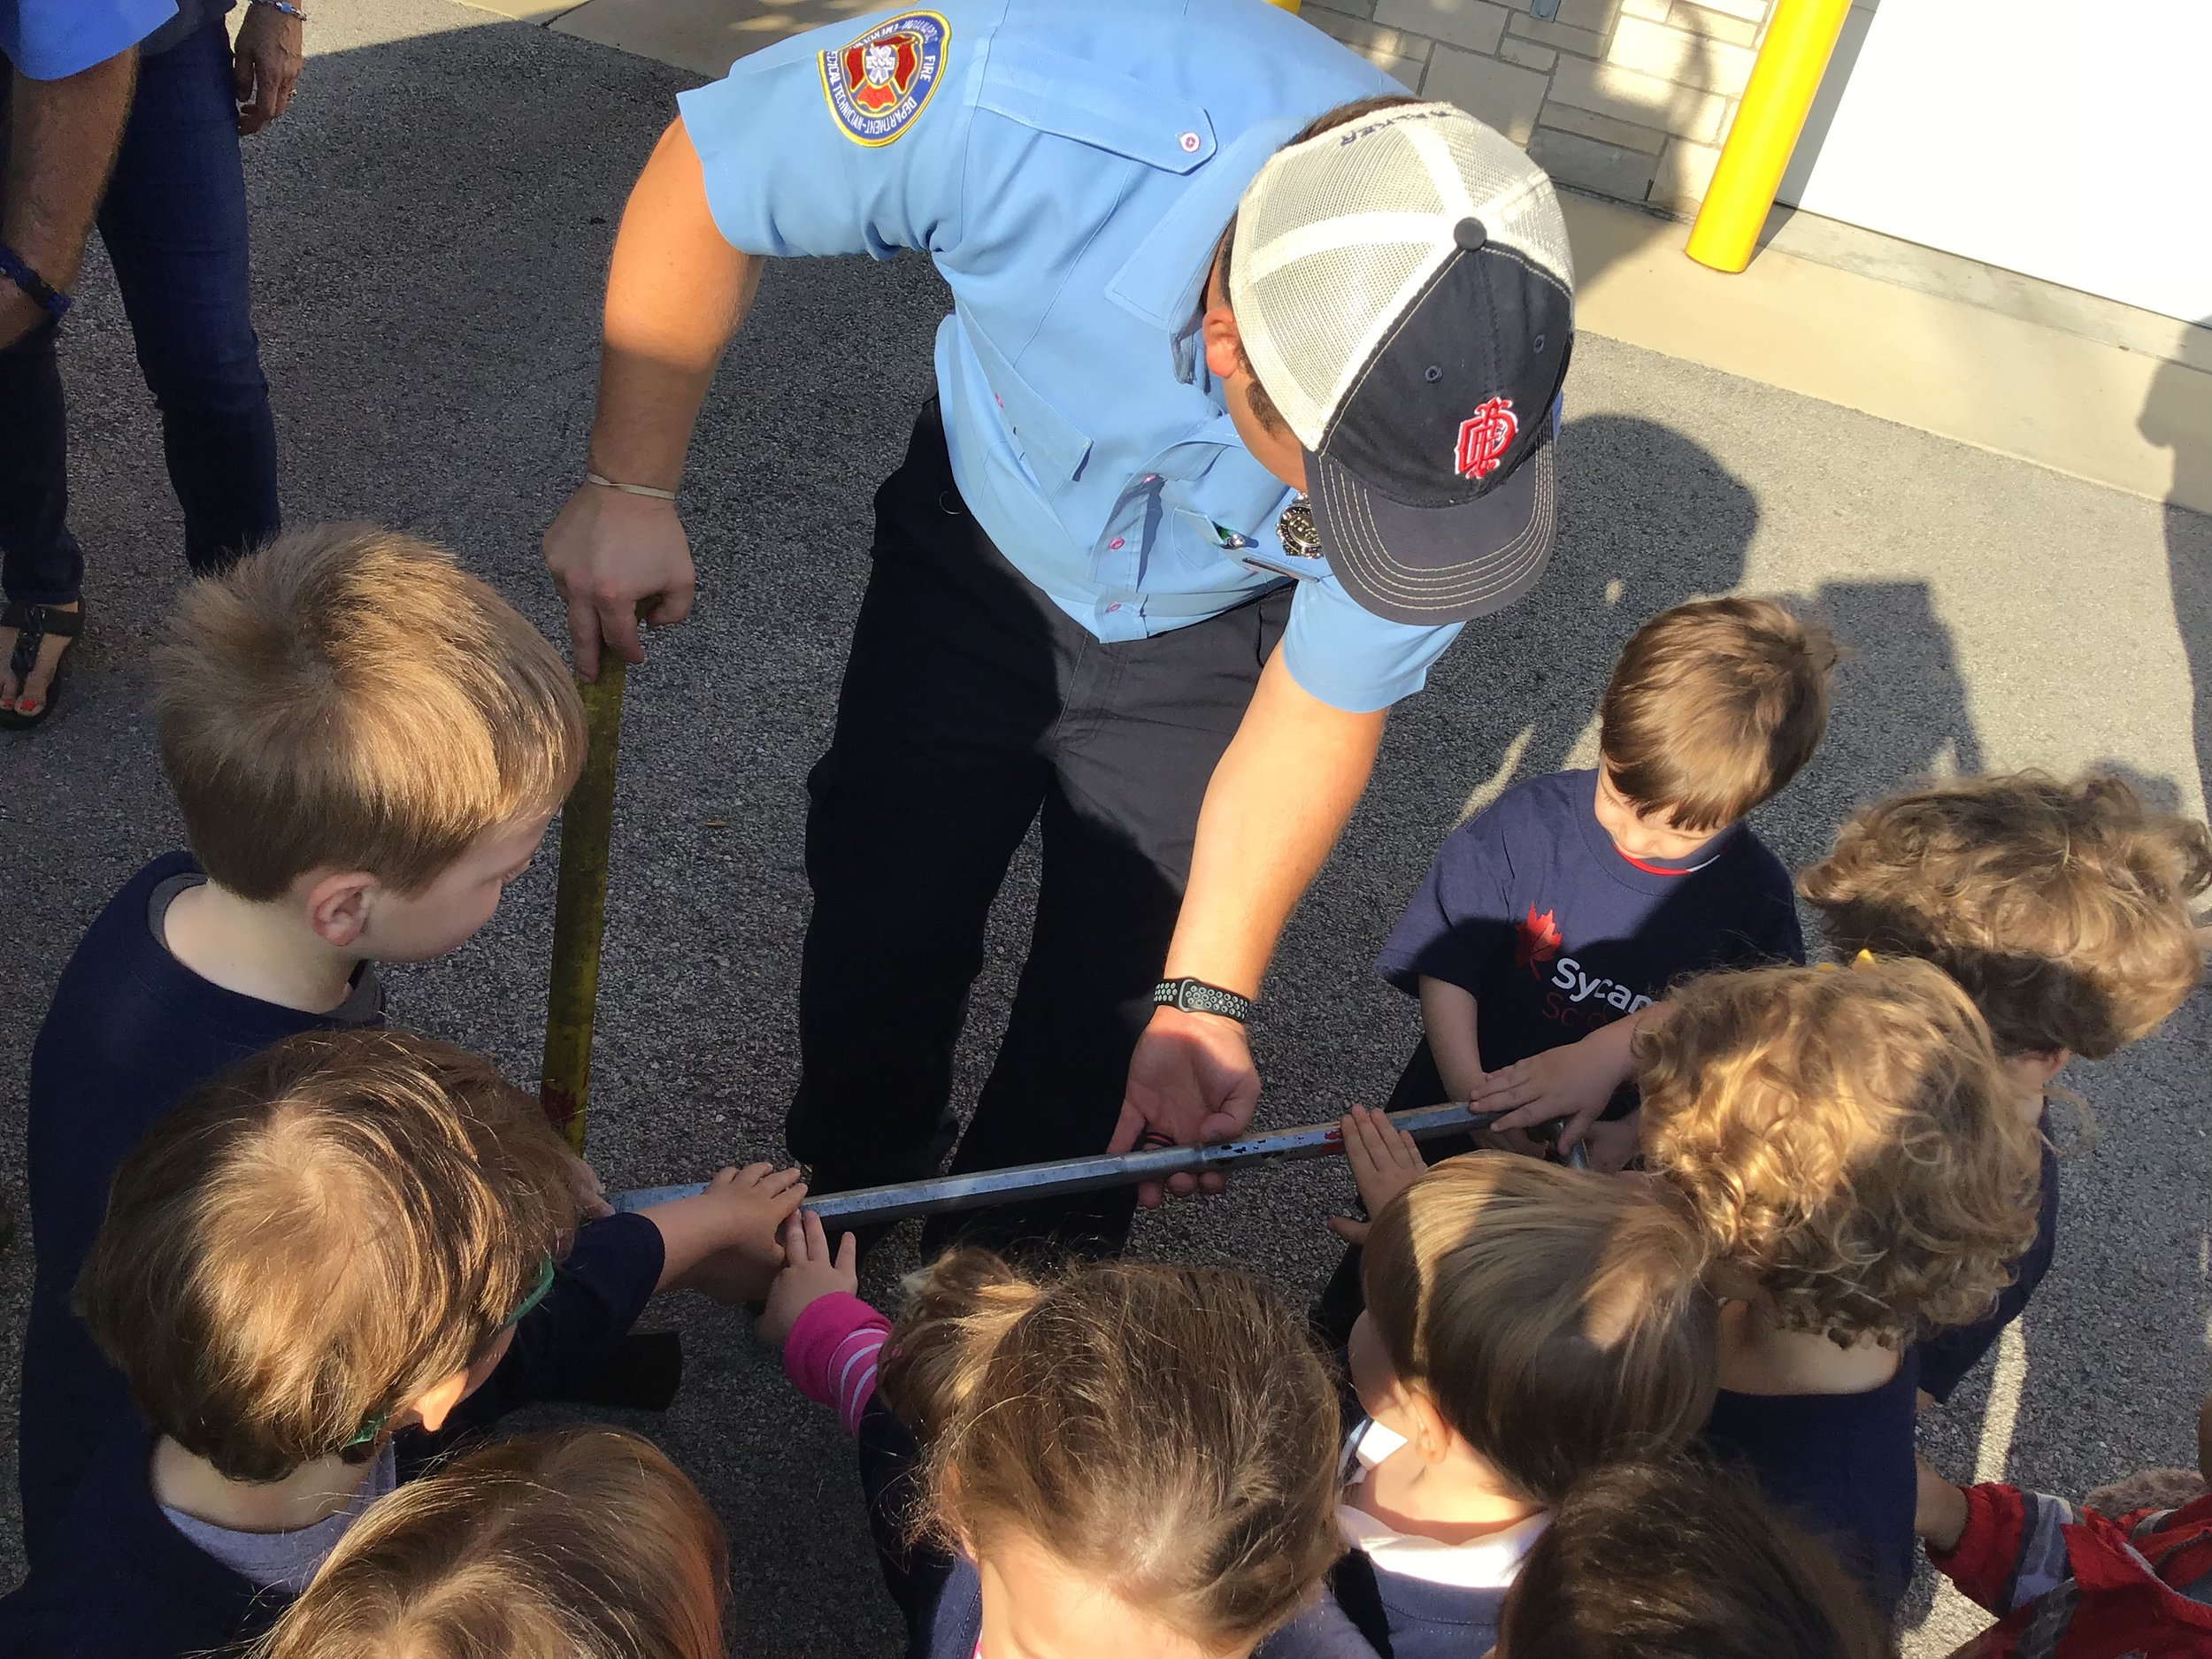 PSR - Field Trip to the Fire Station - 7996870.jpg